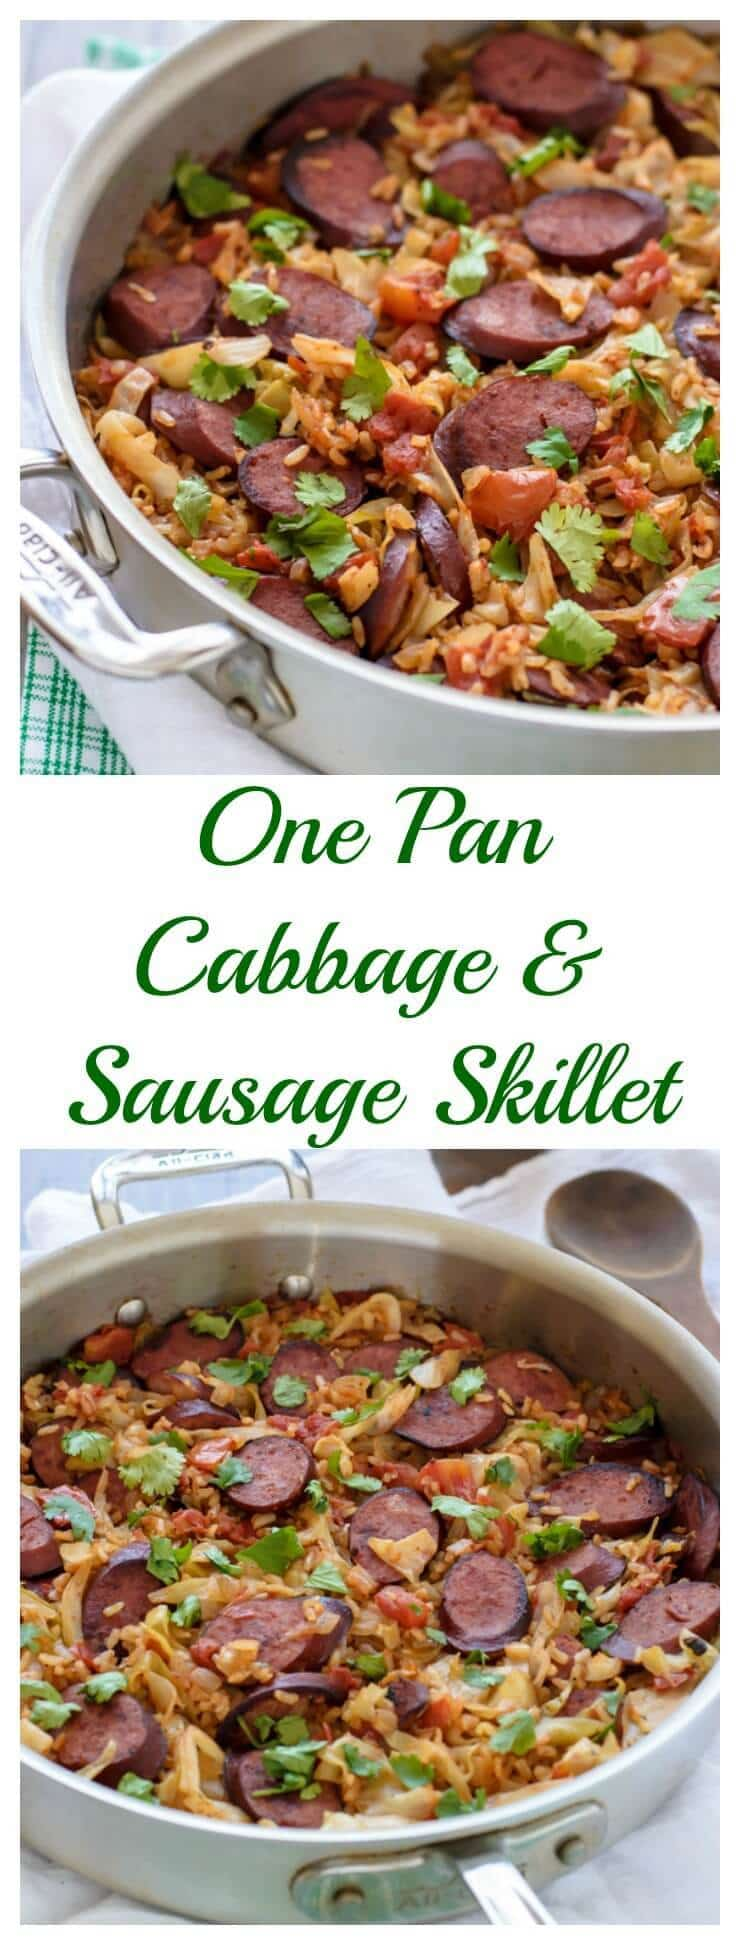 One Pan Cabbage and Sausage Skillet. Easy, healthy, only one dish! #stpatricksday